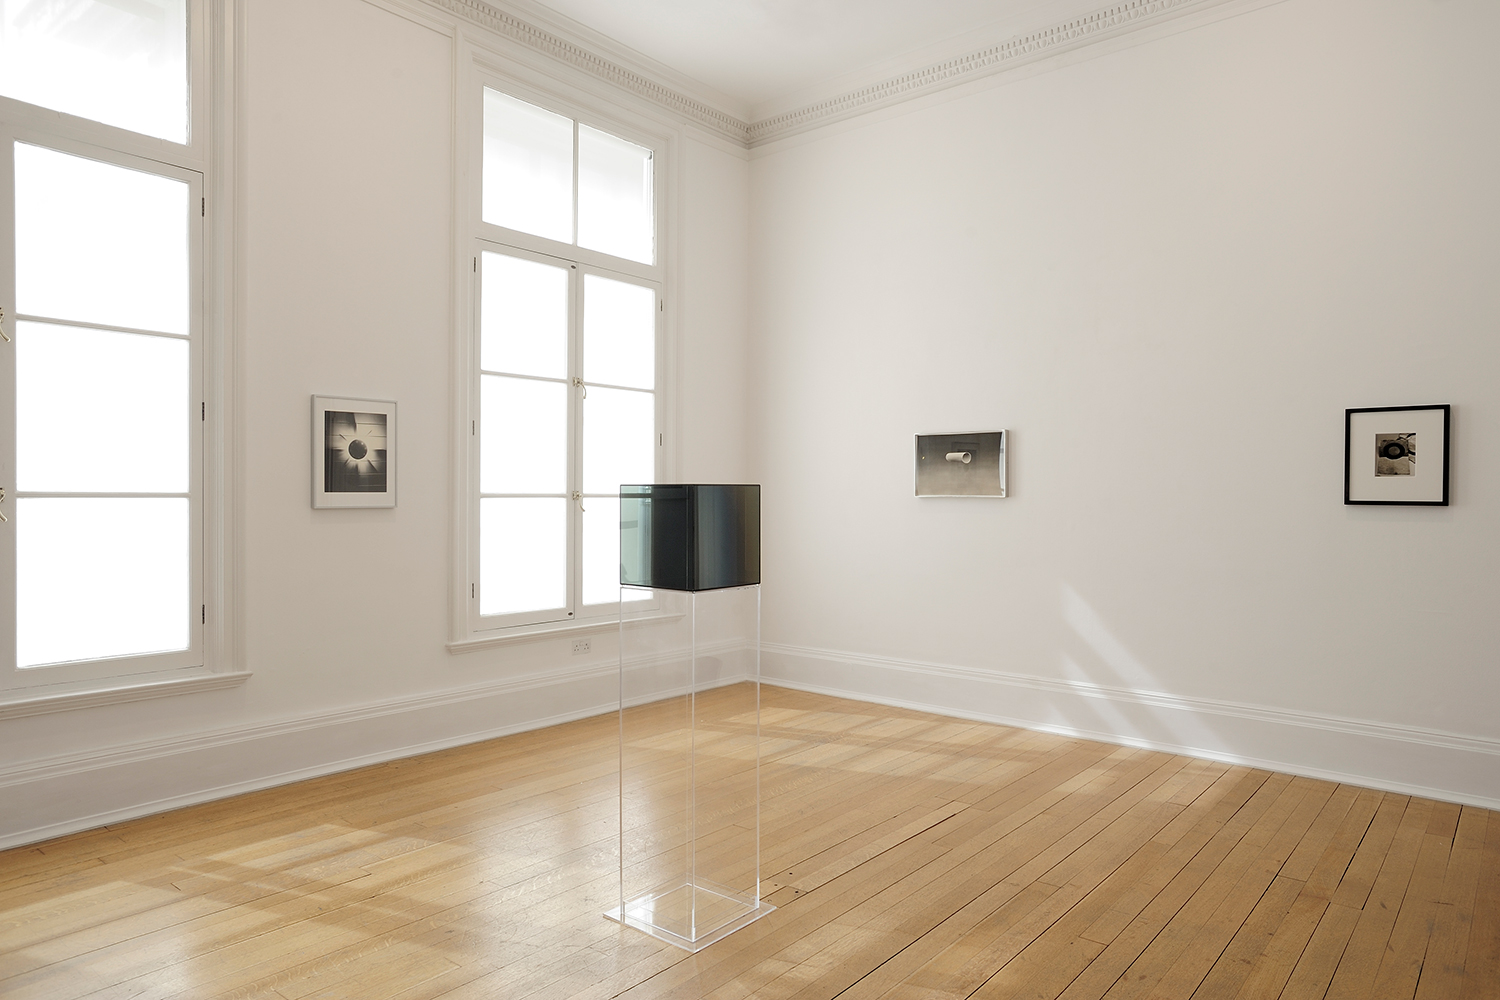 Sunless , Thomas Dane Gallery, London, United Kingdom, 2010.    James Welling,Ed Ruscha, Larry Bell, and Jay DeFeo